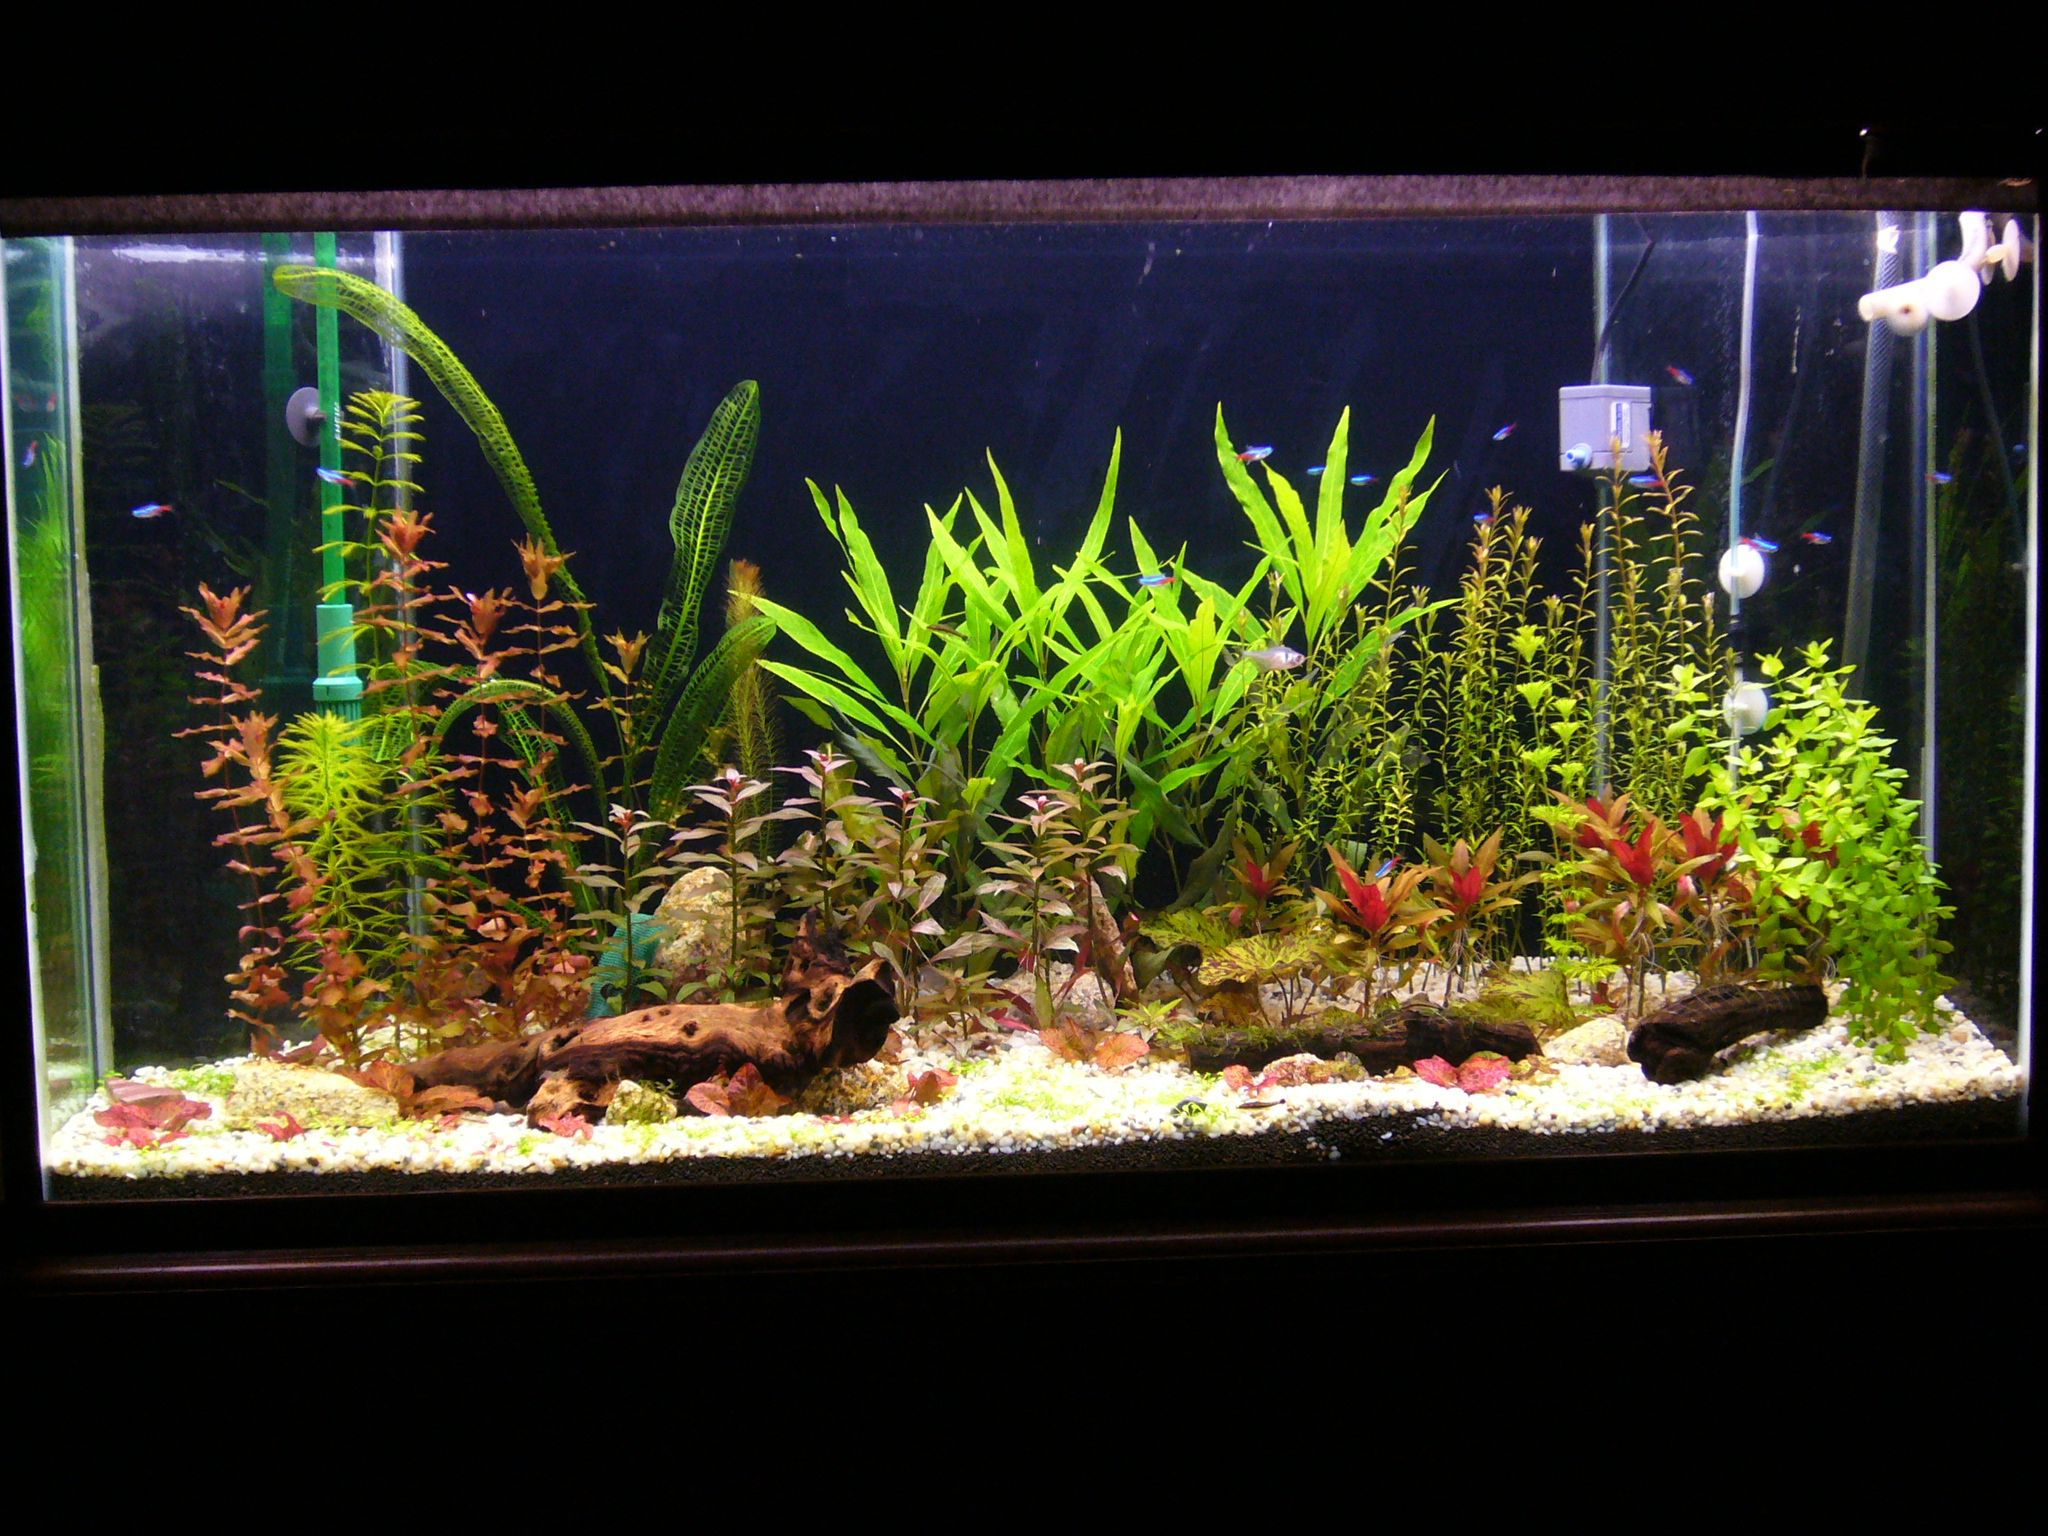 Aquarium Dekorieren Ideen Aquarium Plants Real Or Artificial